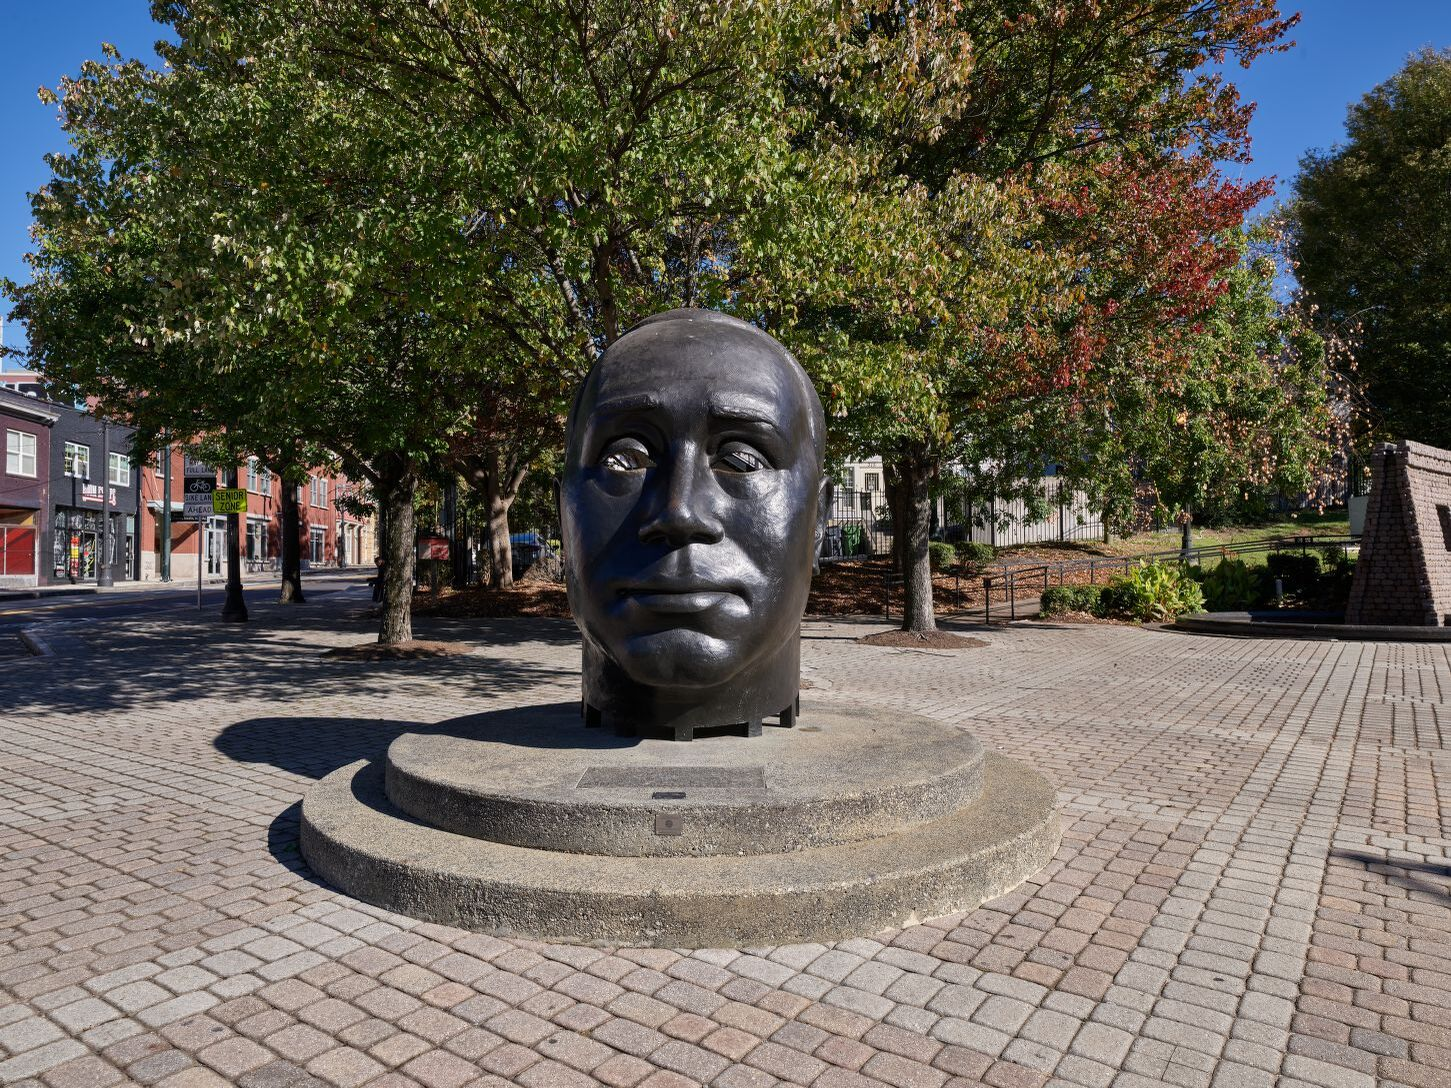 2017 photograph of John Wesley Dobbs bronze sculpture in the plaza (Highsmith 2017, Library of Congress Prints & Photographs Division)